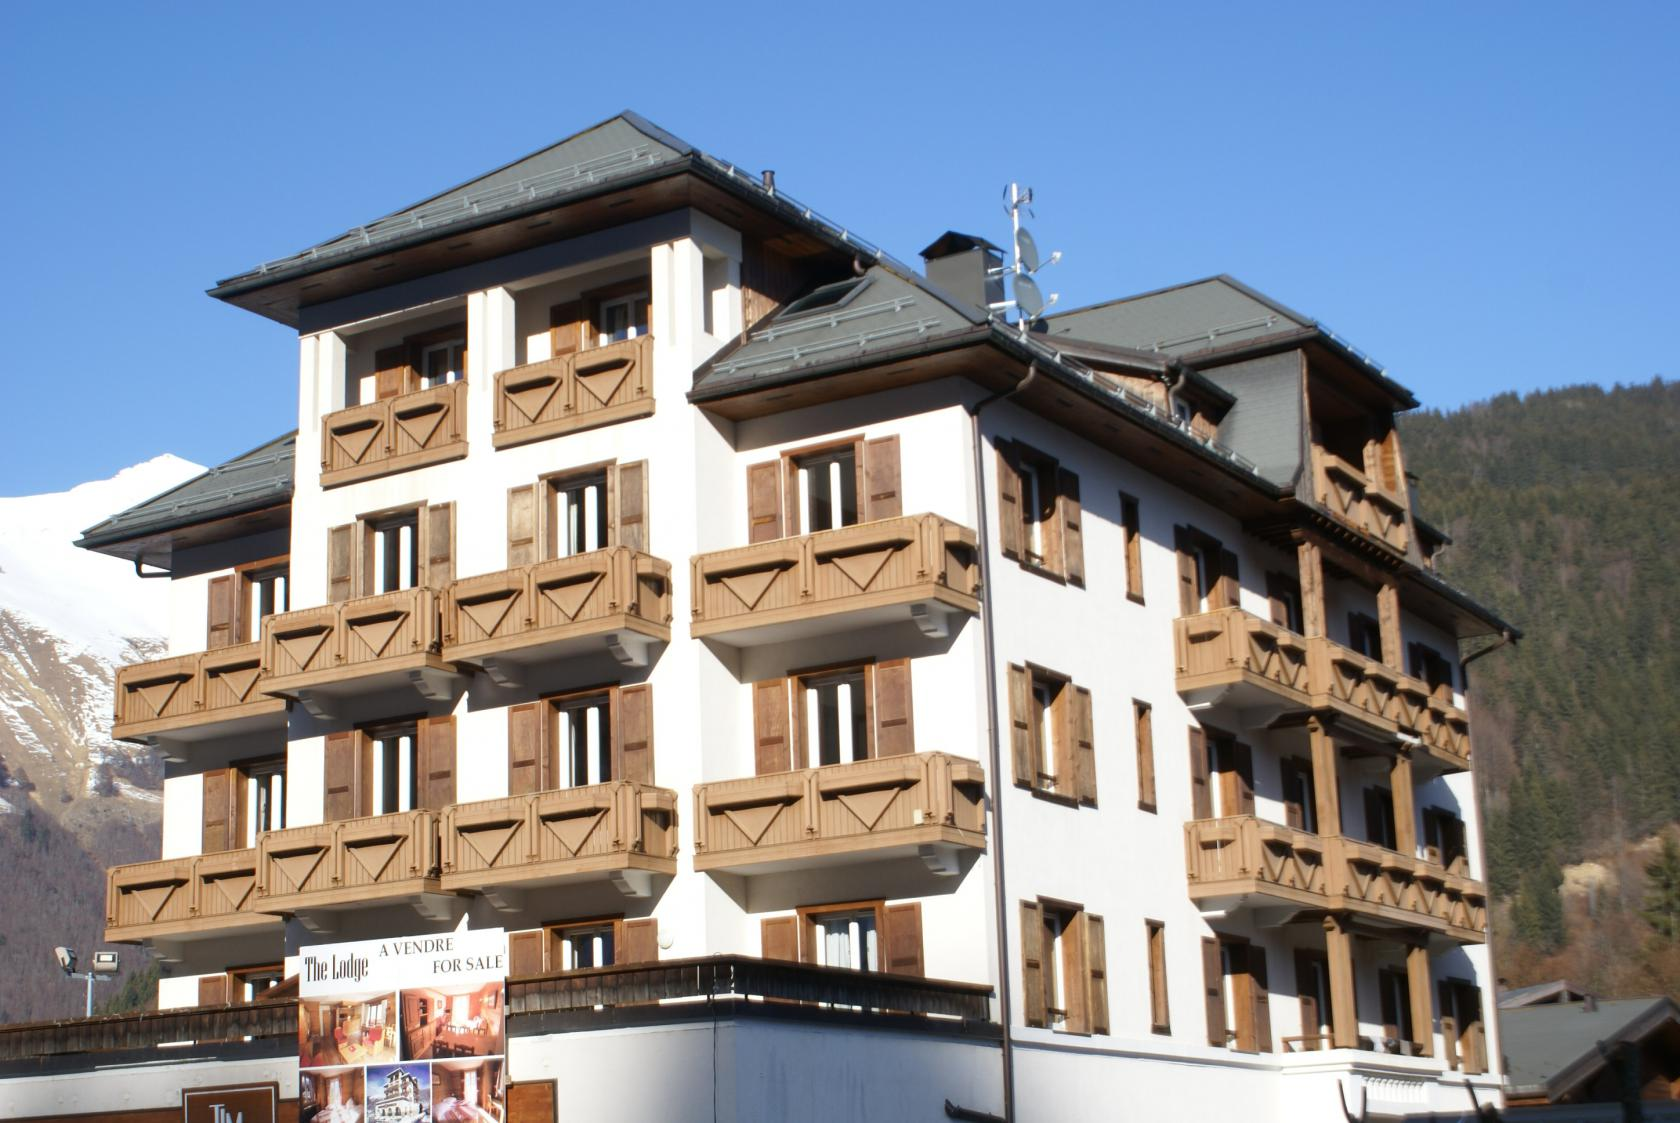 2 Bedroom Duplex Apartment near Pistes and Shops in Morzine'